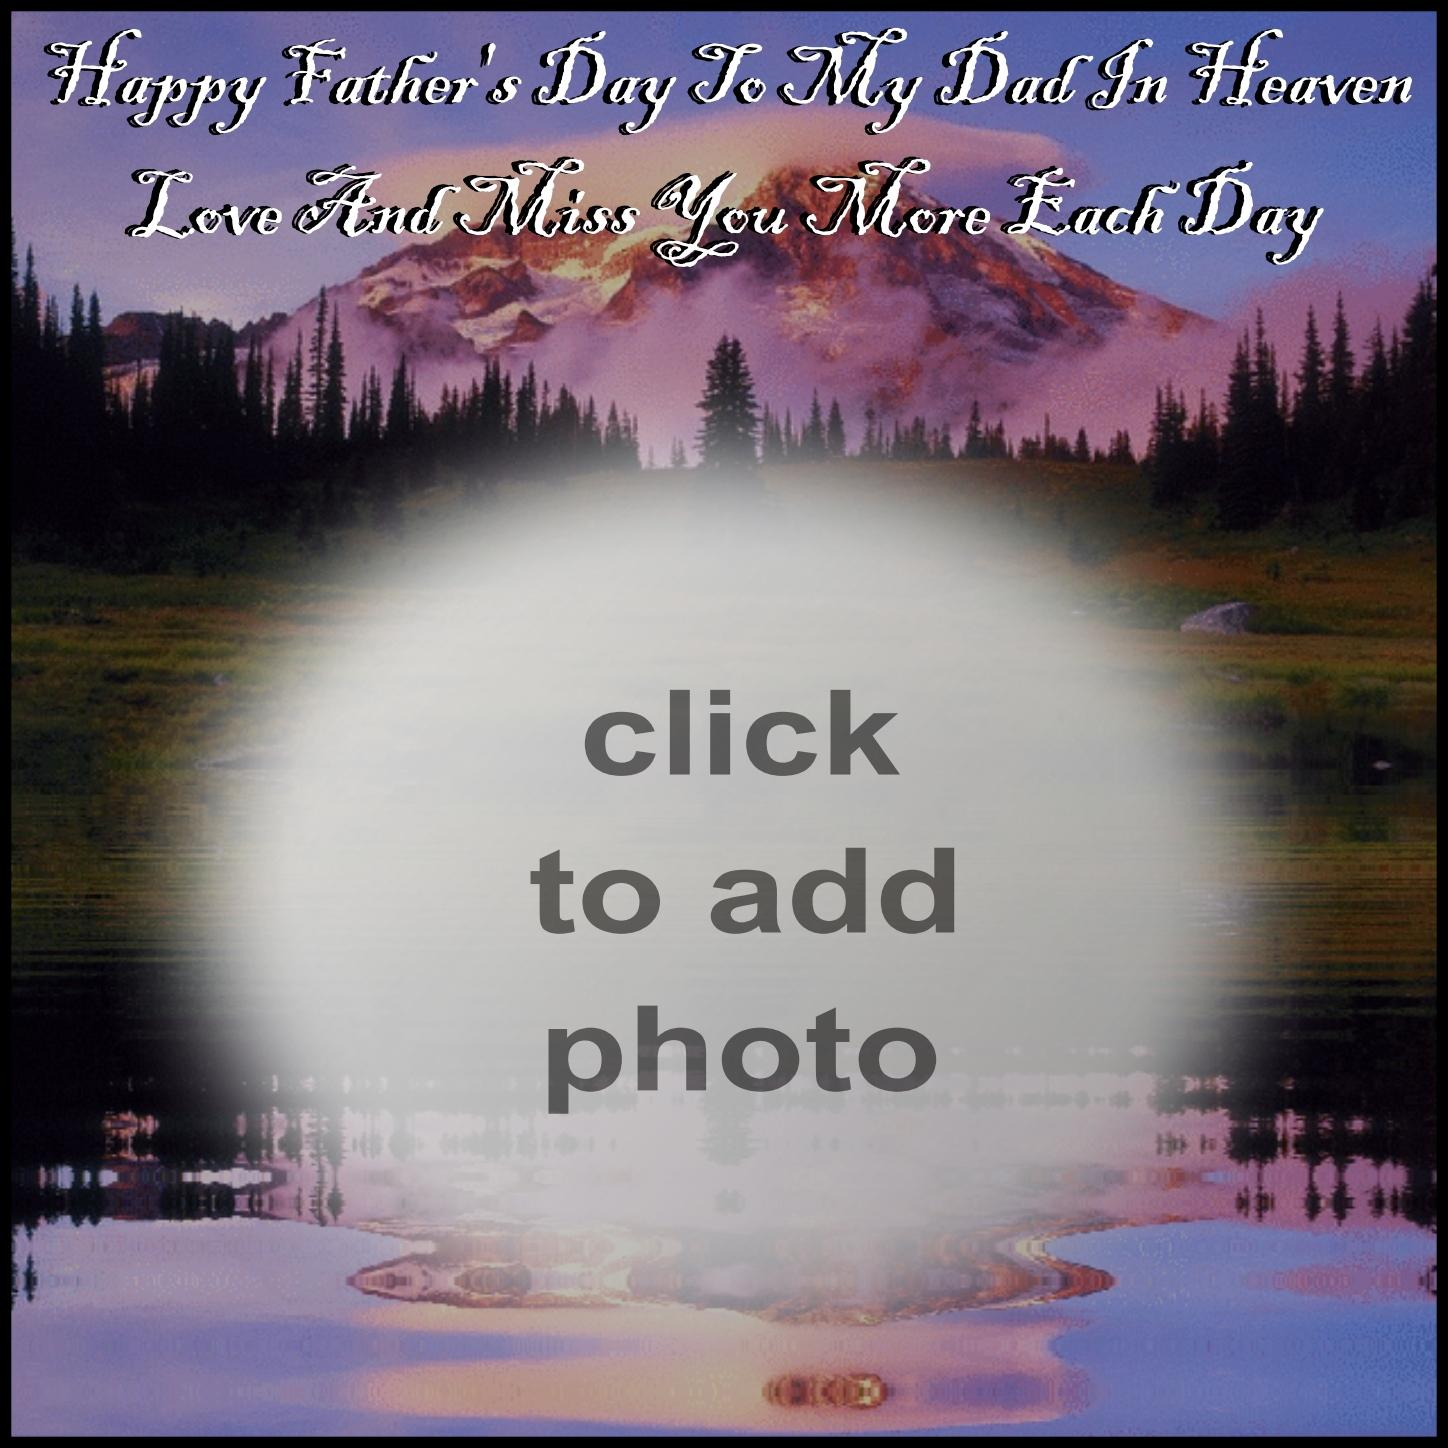 Imikimi zo summer holiday frames fathers day in heaven imikimi zo summer holiday frames fathers day in heaven youthquake333 jeuxipadfo Gallery